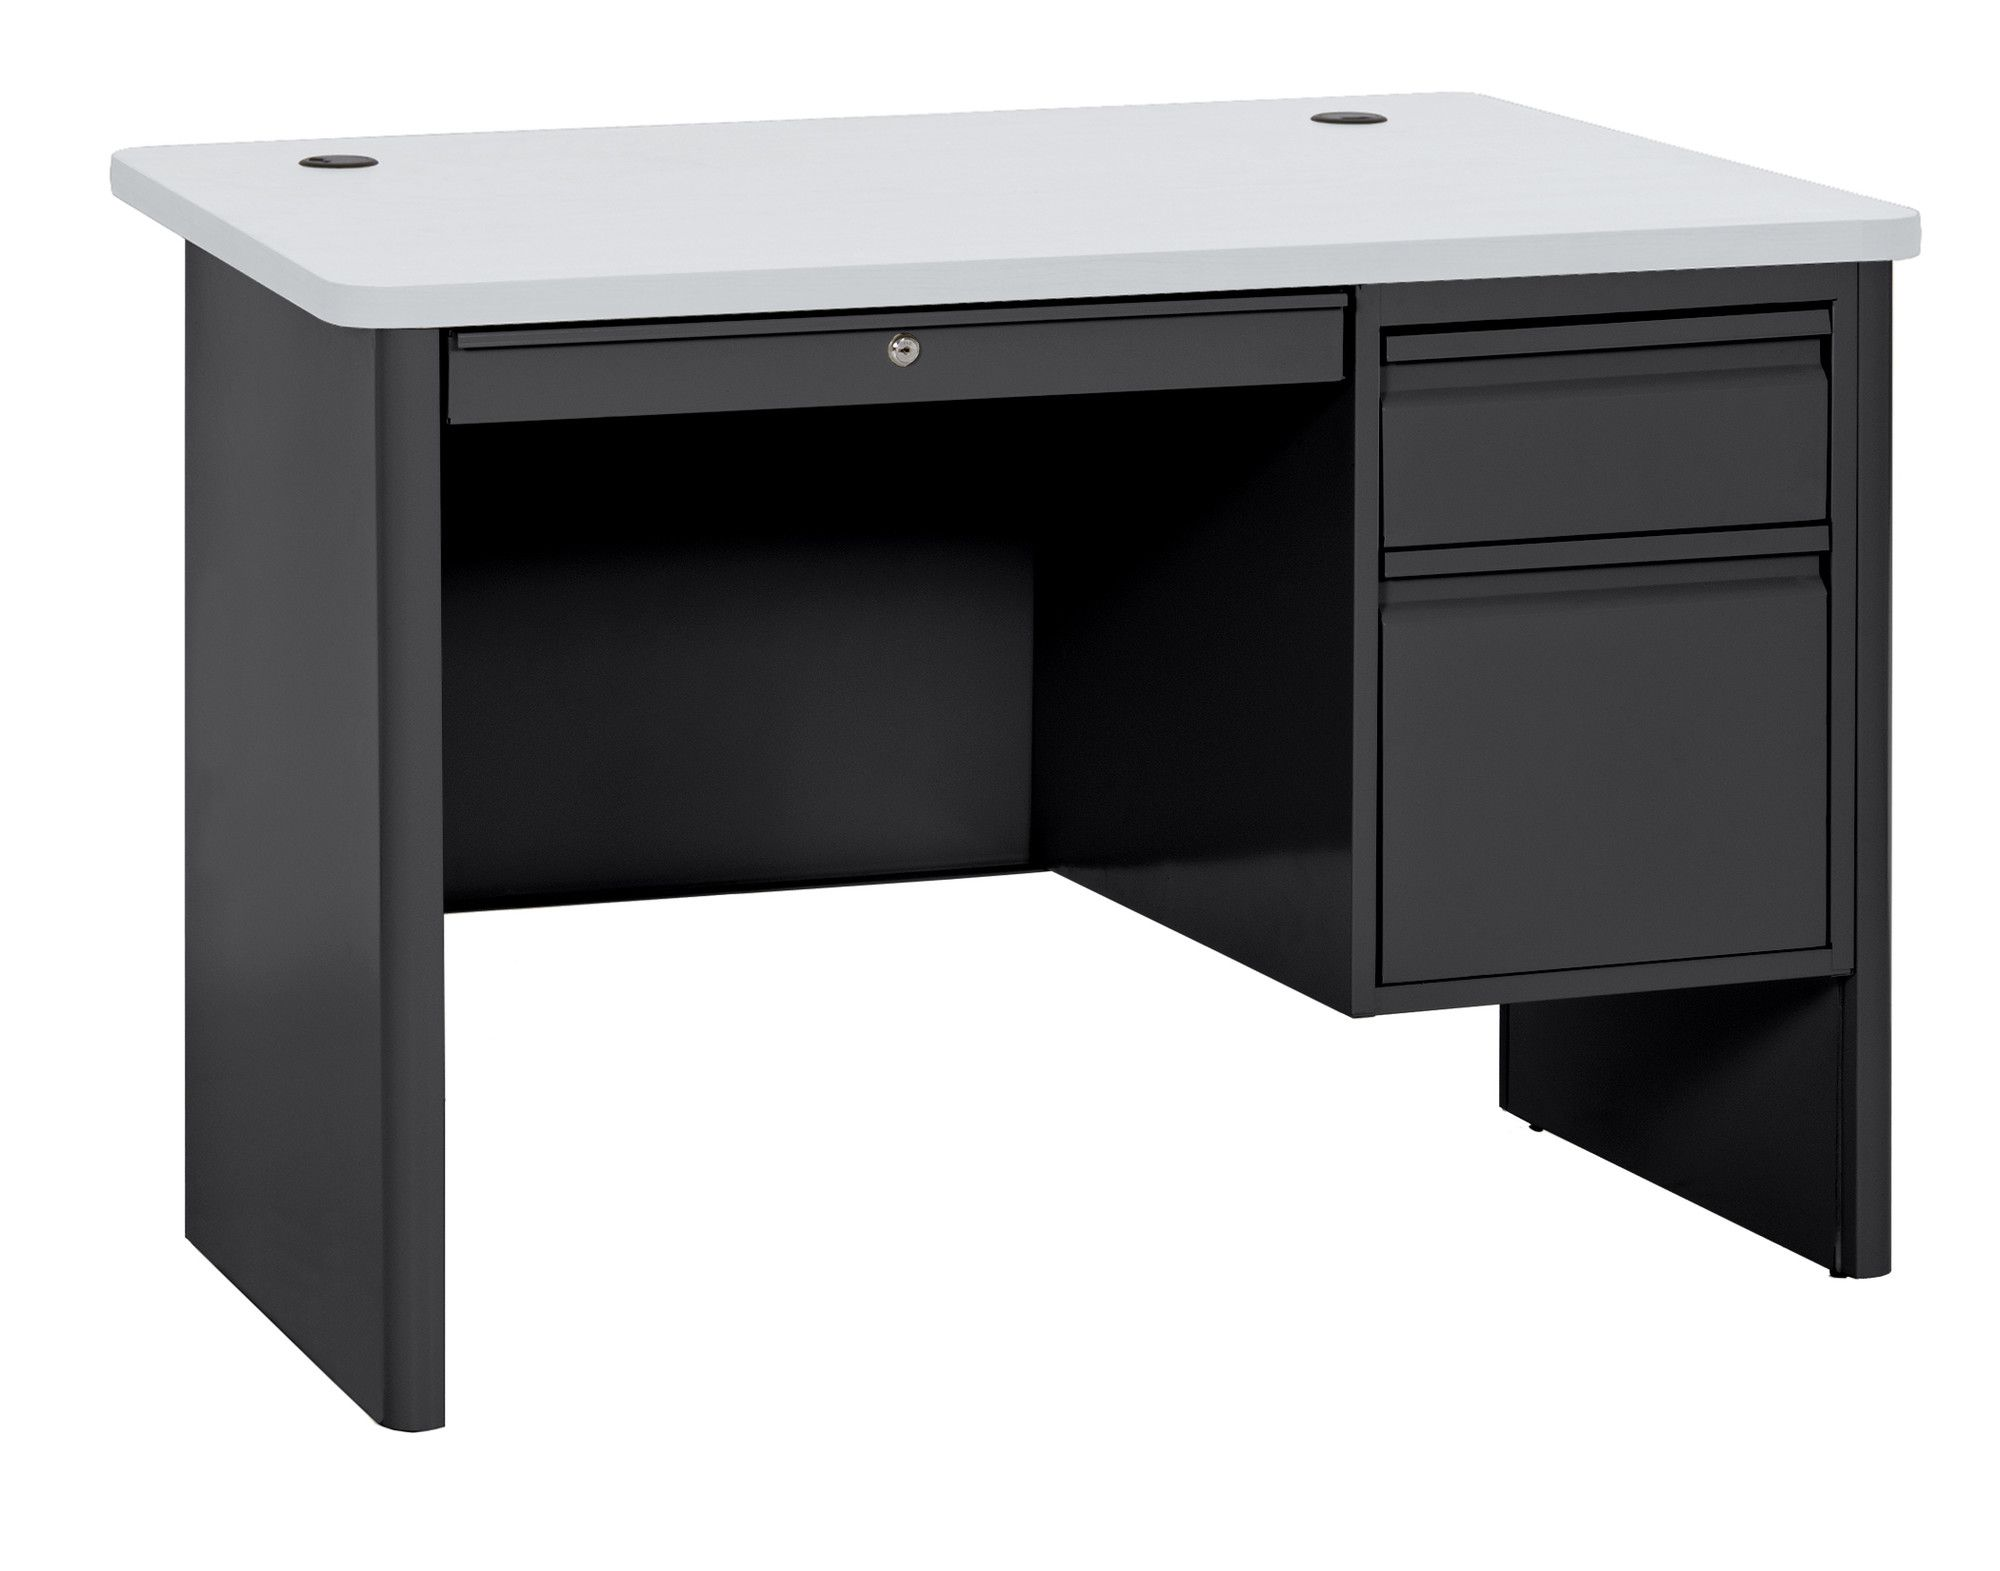 700 Series Single Pedestal Computer Desk Desk Pedestal Desk